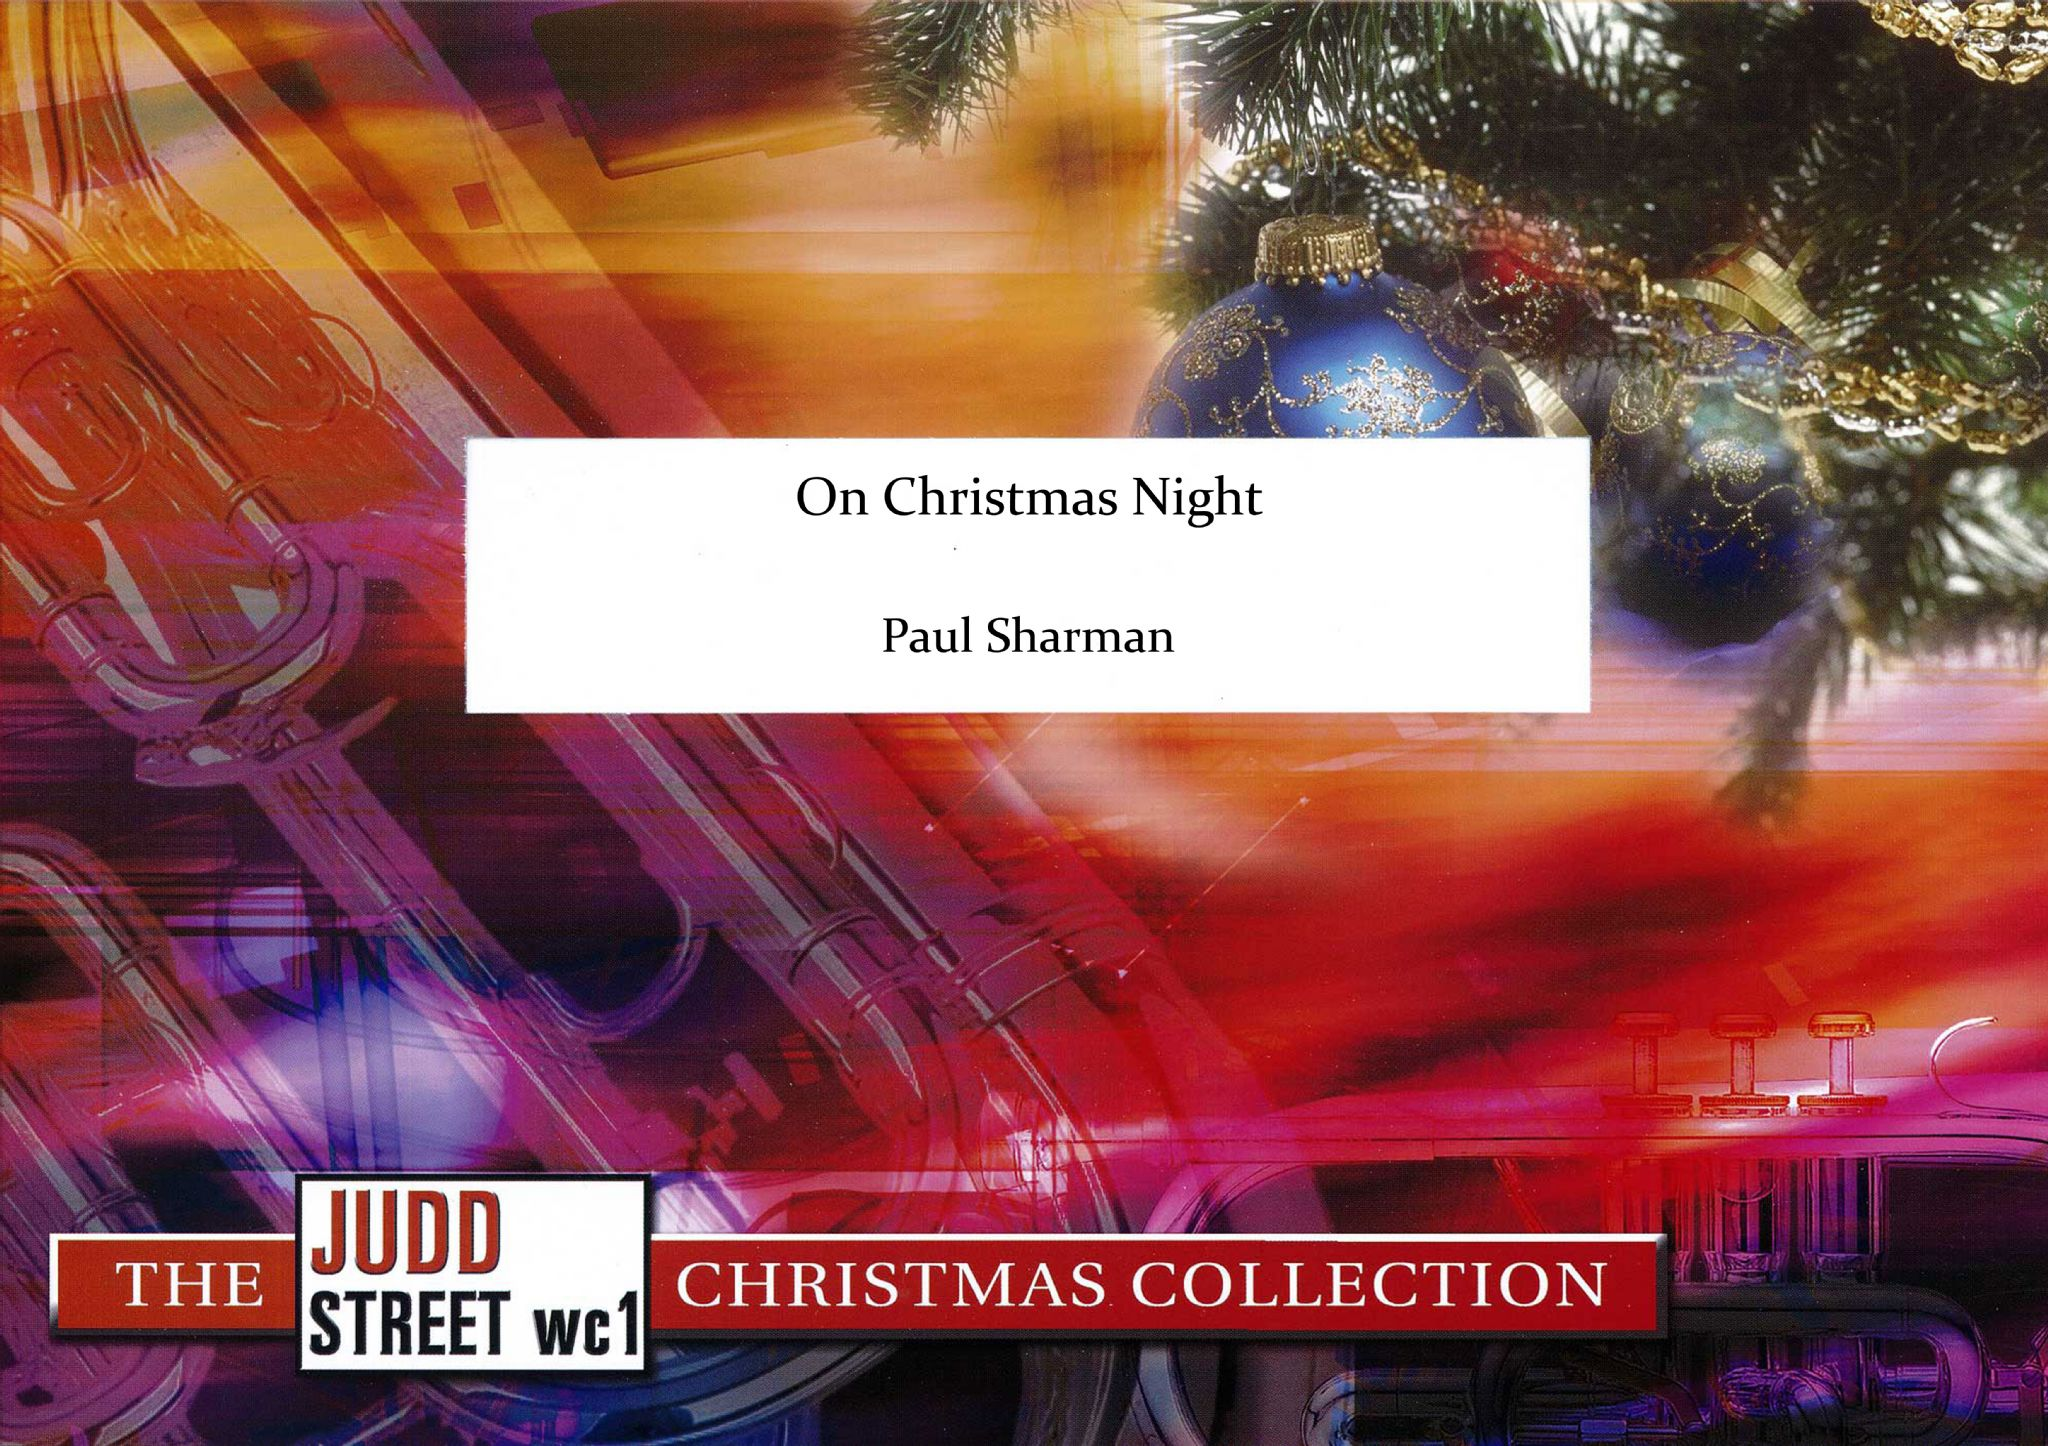 Judd: On Christmas Night